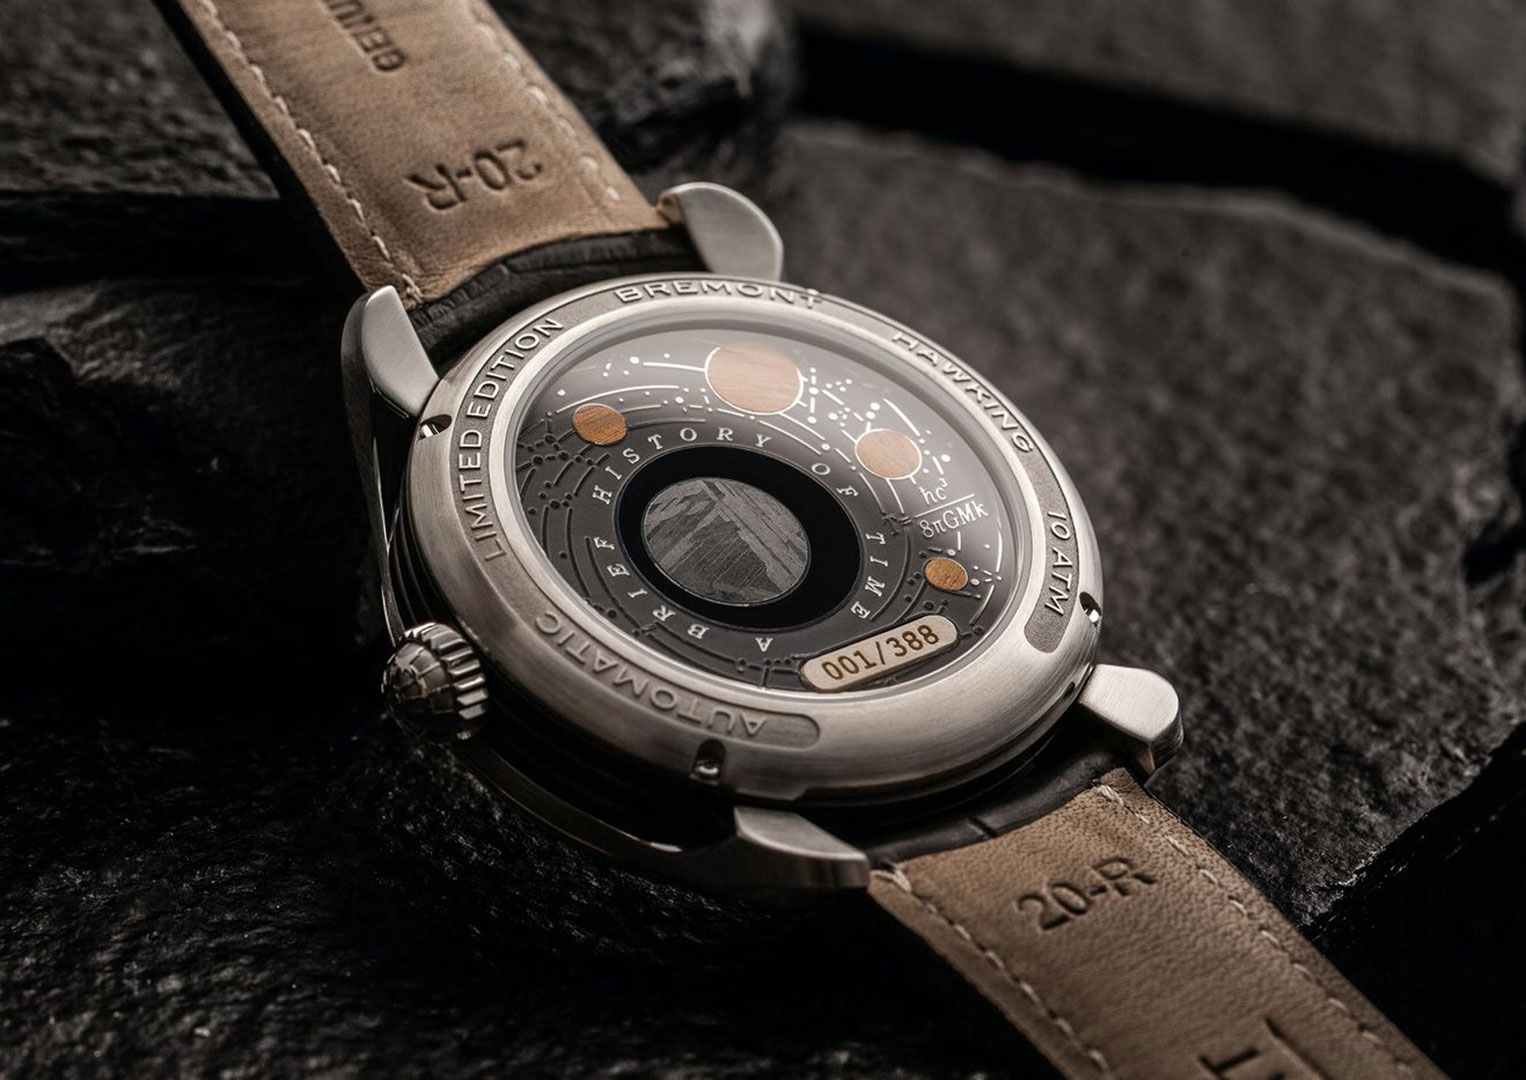 Bremont is famous for its aviation-inspired timepieces